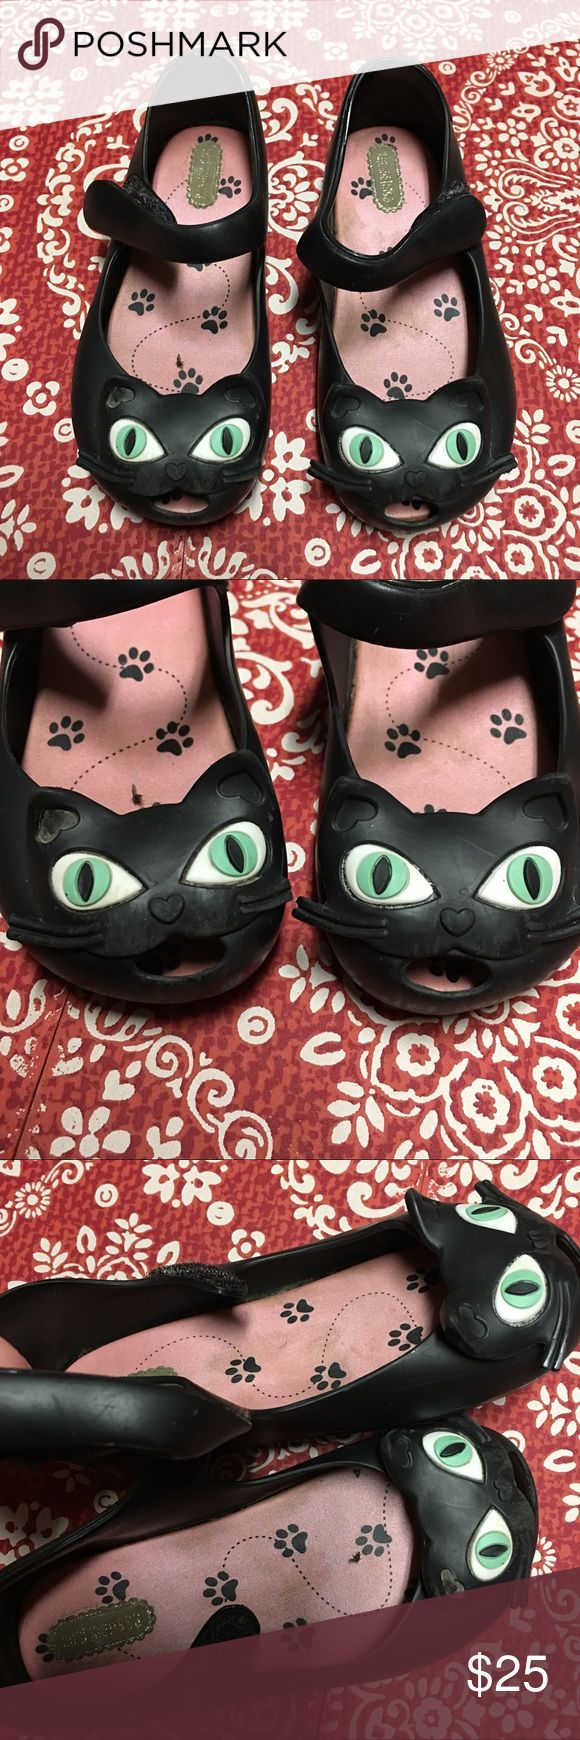 Mini Melissa black cats Authentic Mini Melissa black cats. Do show signs of wear as shown in pics including broken whiskers and dirty footbeds. Have several other pairs listed in size 9- check them out! * Sorry- the Mini Melissa shoes will not be included in the BOGO FREE sale * Mini Melissa Shoes